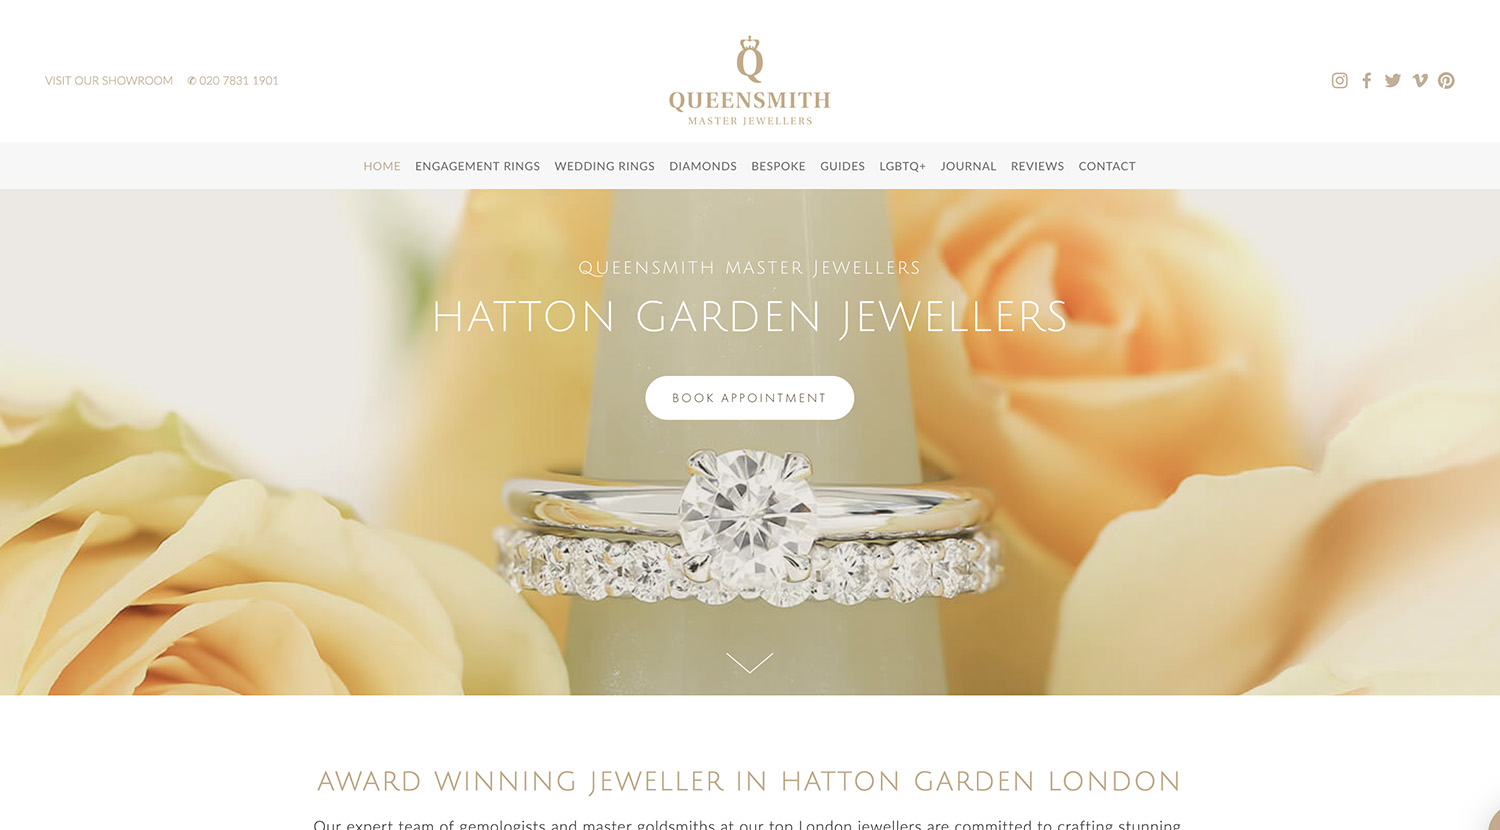 queensmith jewellery website.jpg